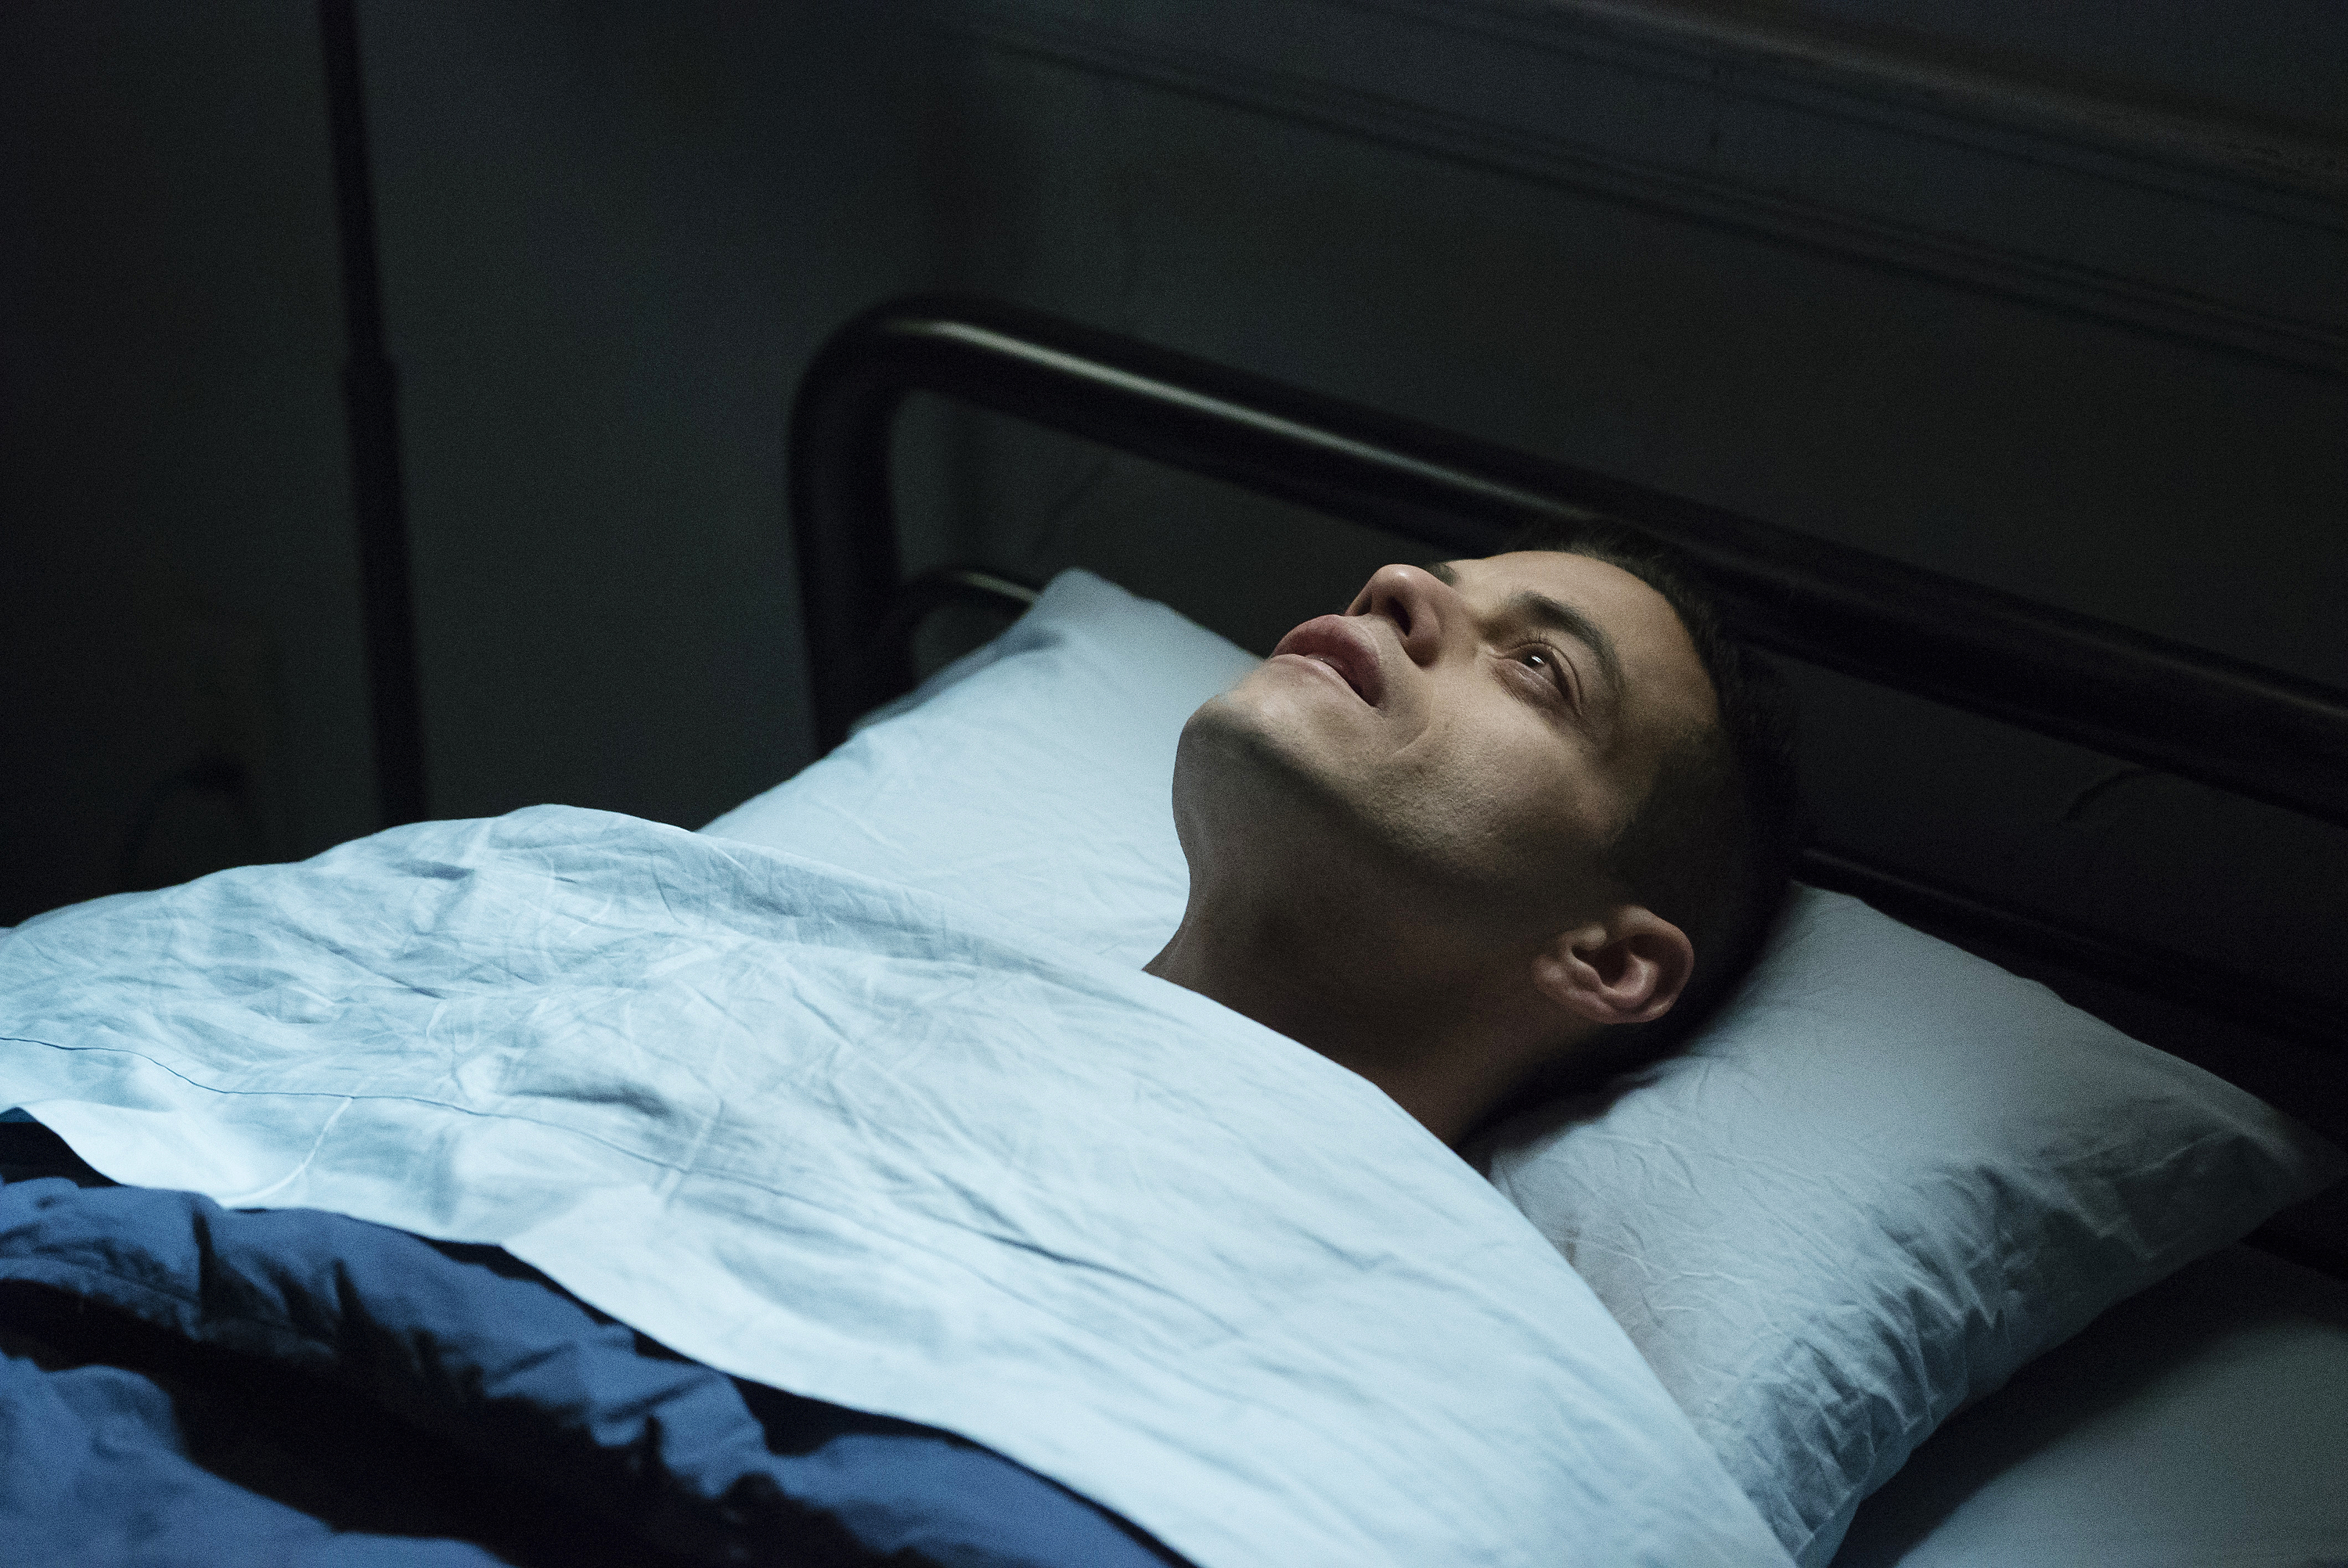 'Mr. Robot' Book Review: 'Red Wheelbarrow' Is Even Crazier Than the Show (And Filled With Easter Eggs)